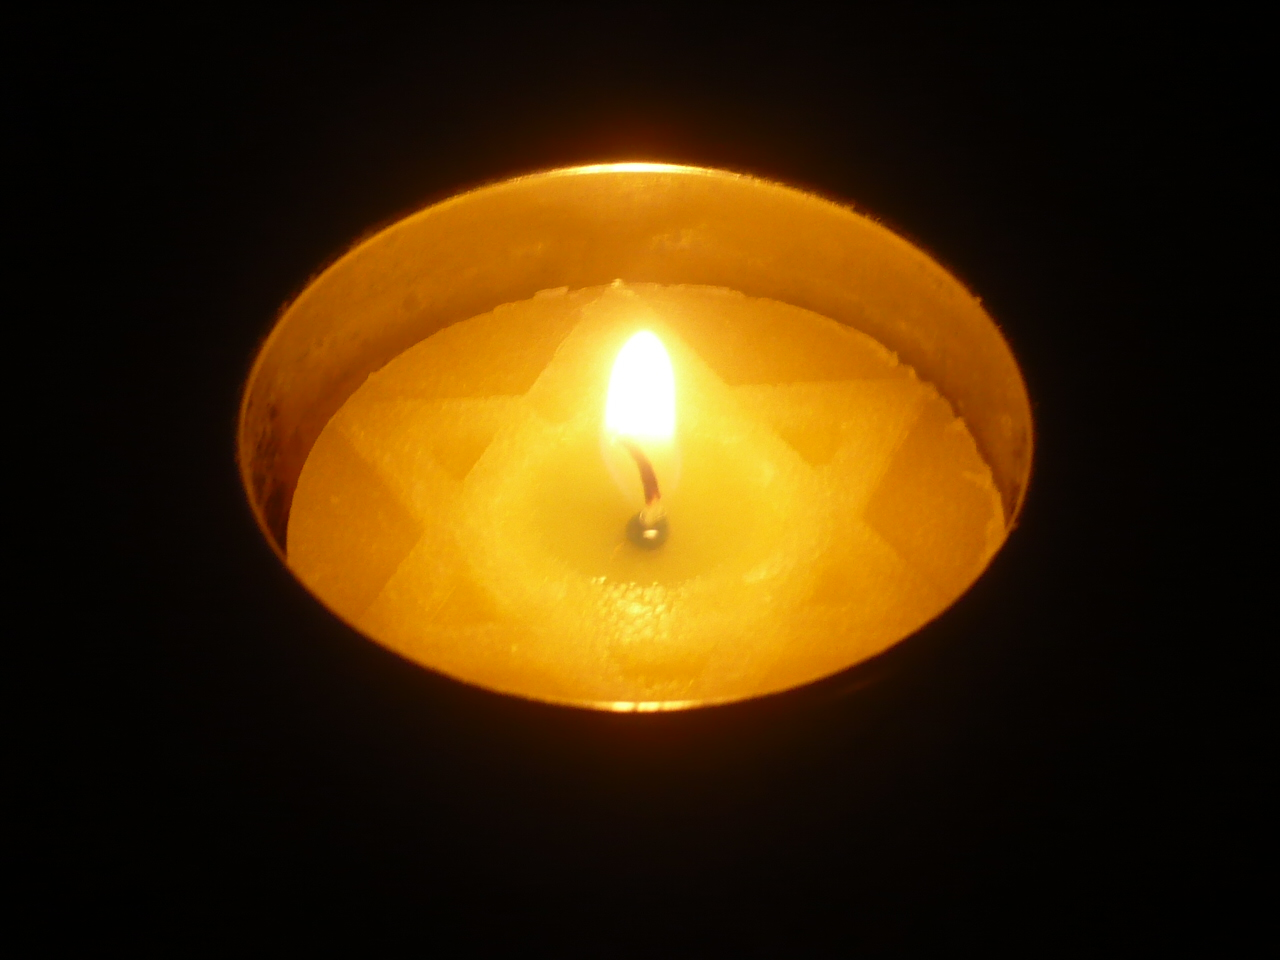 Foto: Valley2city (CC BY-SA 3.0, http://en.wikipedia.org/wiki/Yahrzeit_candle#/media/File:Yom_Hashoah_candle.jpg)